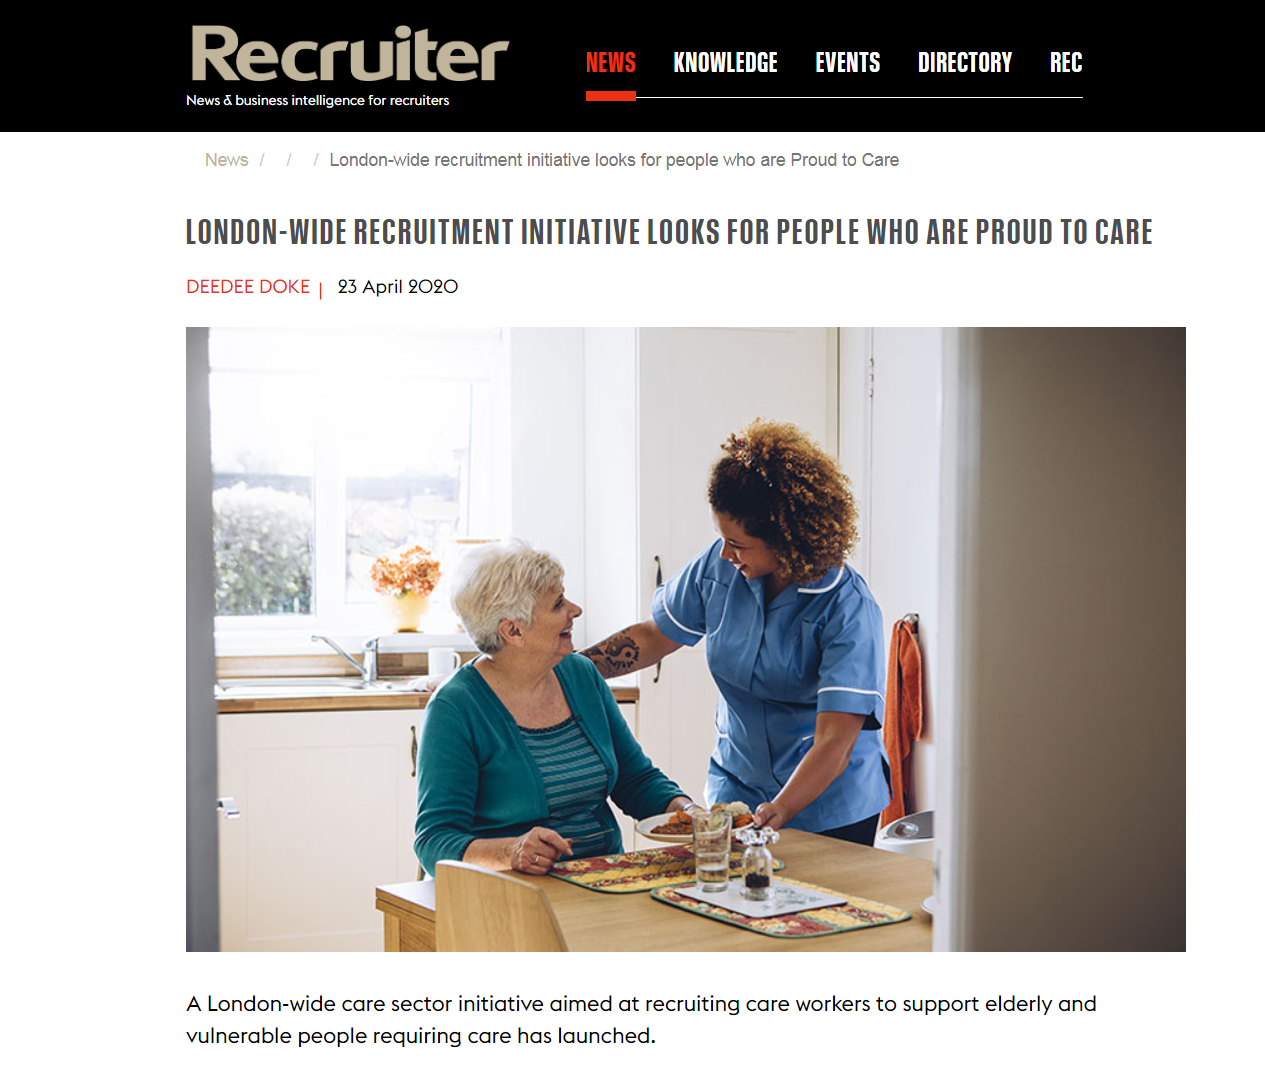 RecruitMag